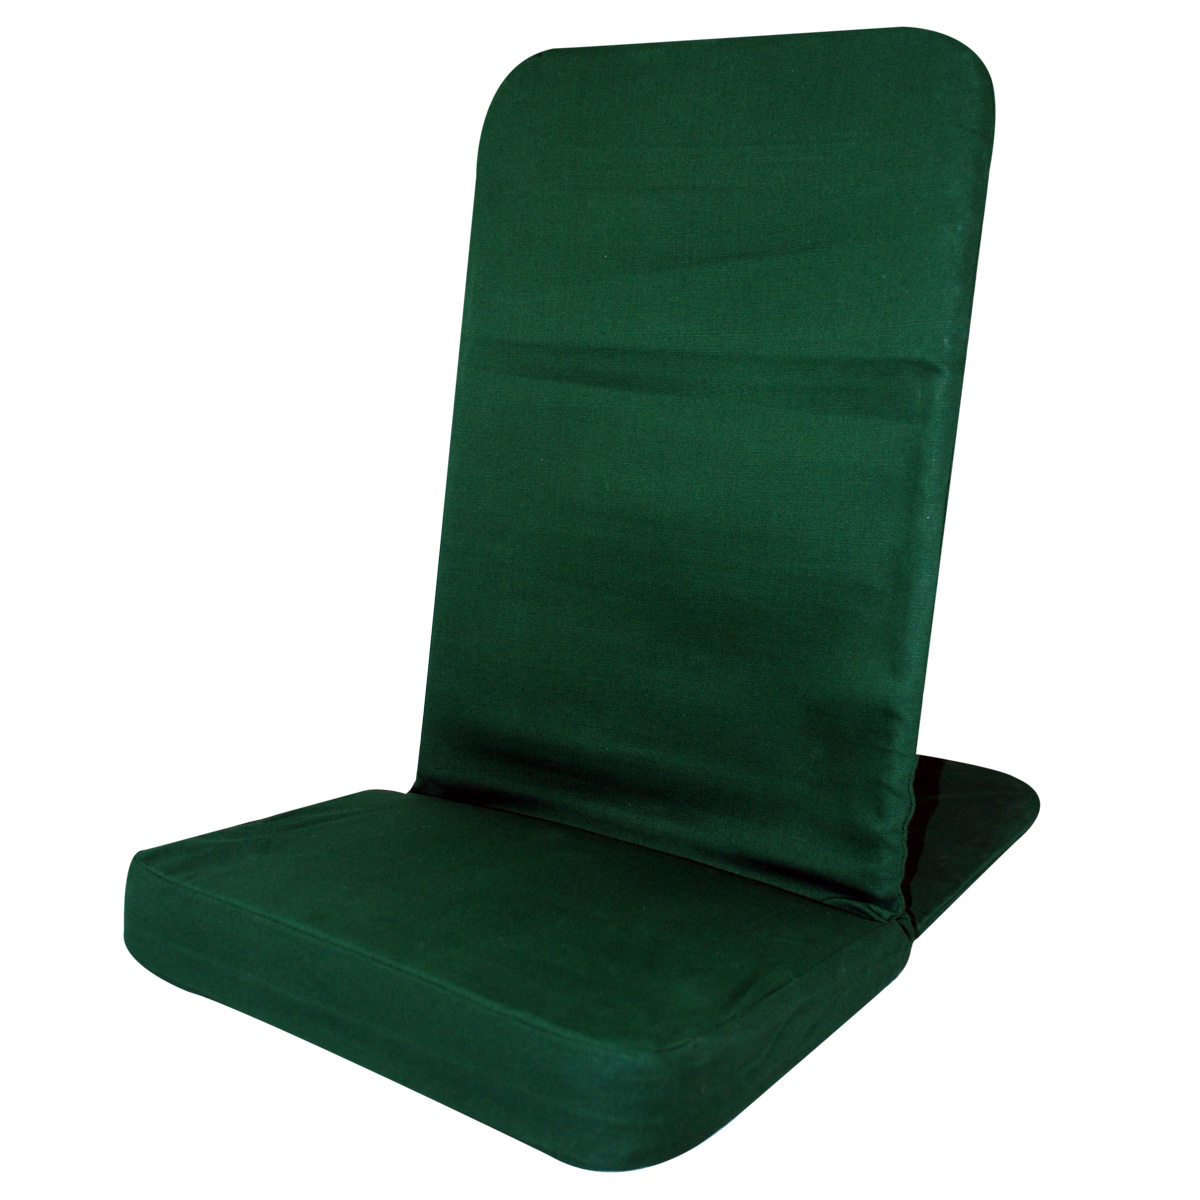 japanese posture chair fabric covers for dining room chairs uk meditation seat yoga accessories zoom